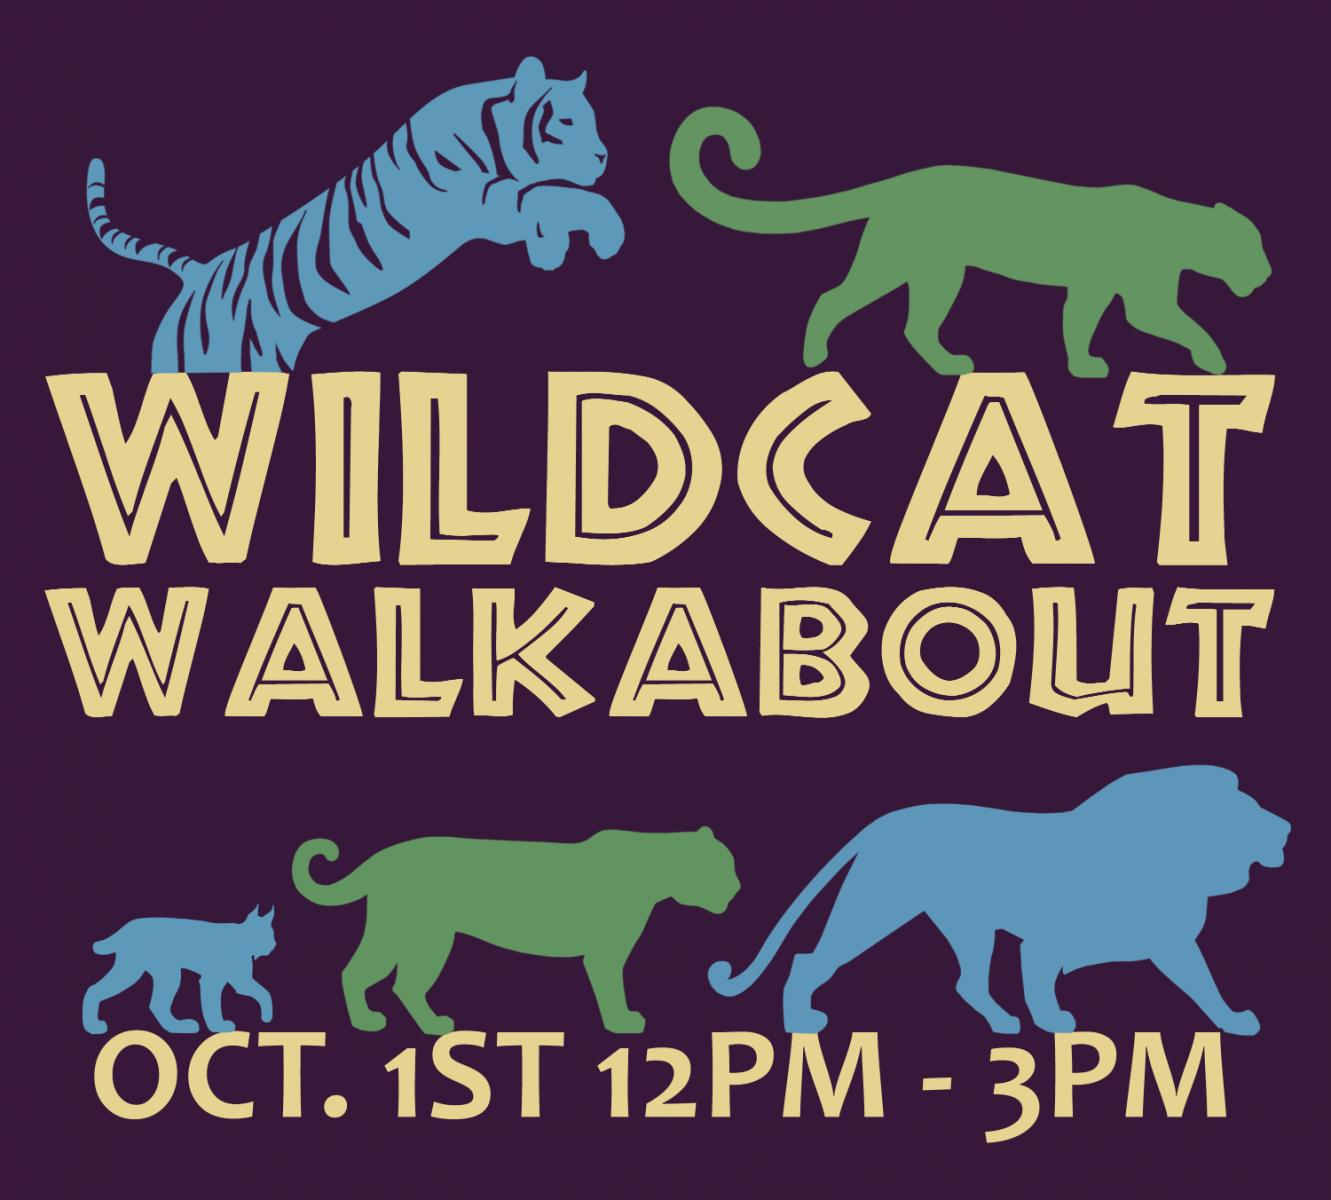 Big Cat Rescue's Wildcat Walkabout